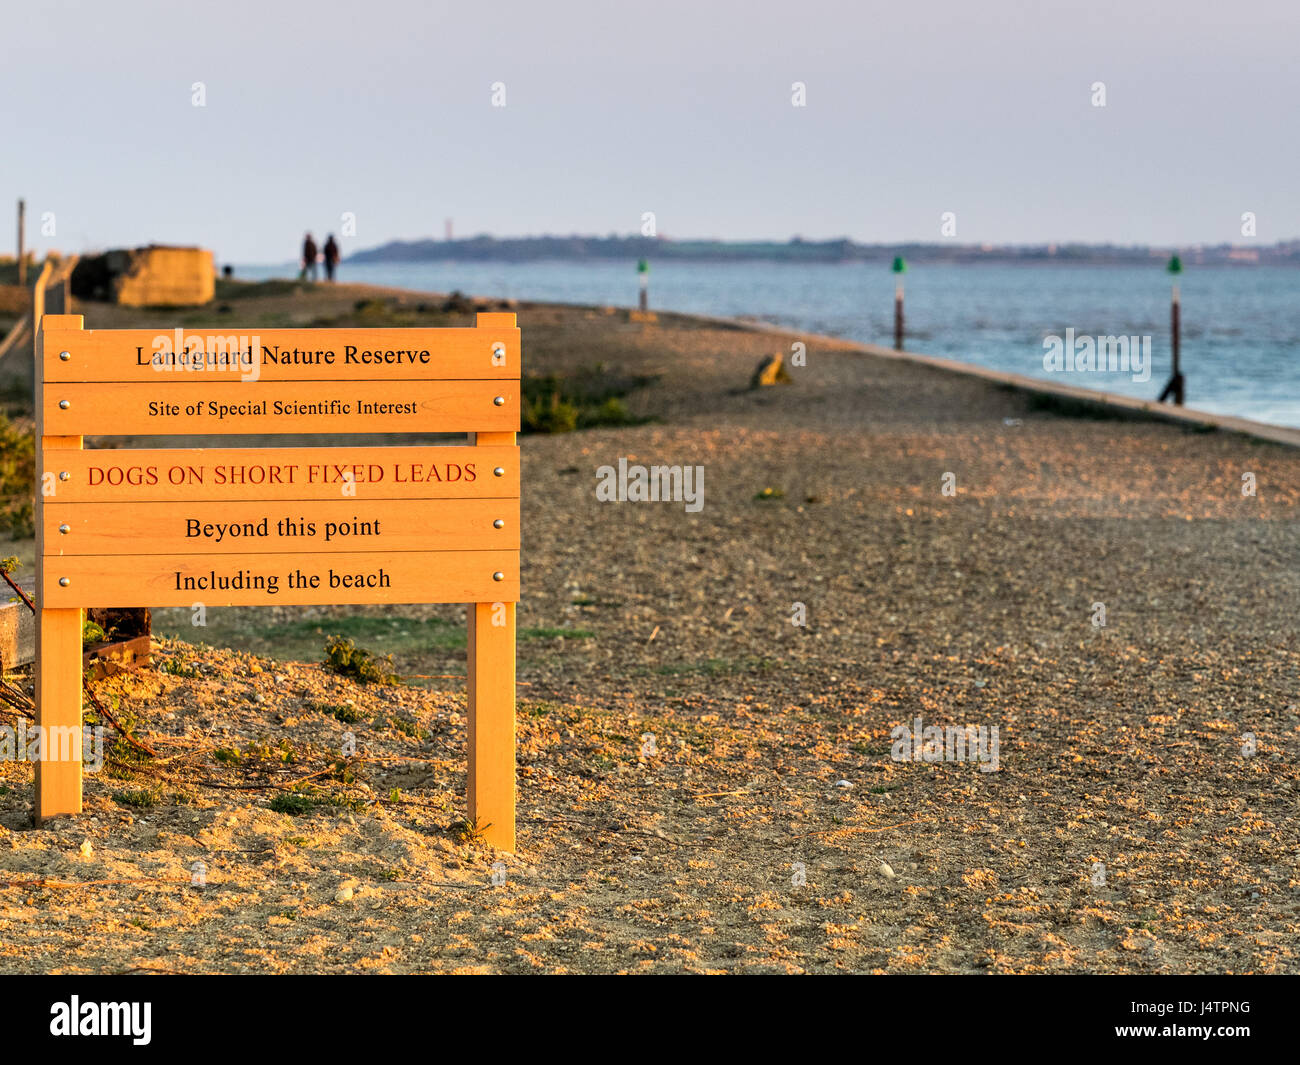 Visitors information sign at the entrance to the Landguard Nature Reserve, a site of Special Scientific Interest - Stock Image